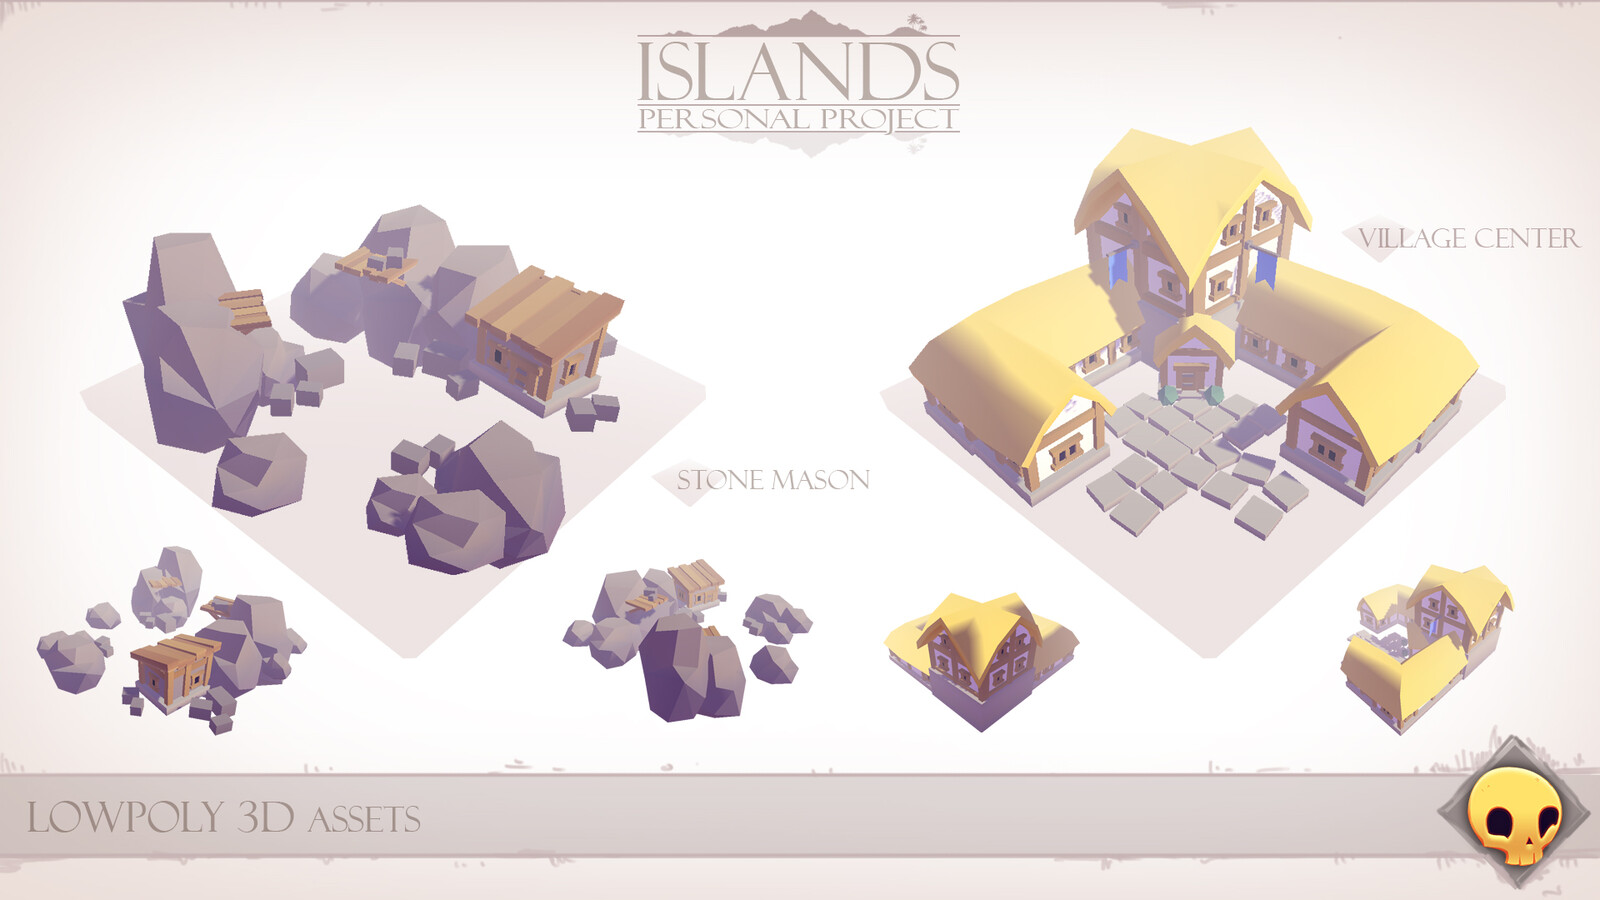 Lowpoly 3D Assets - Stonemason & Town Hall